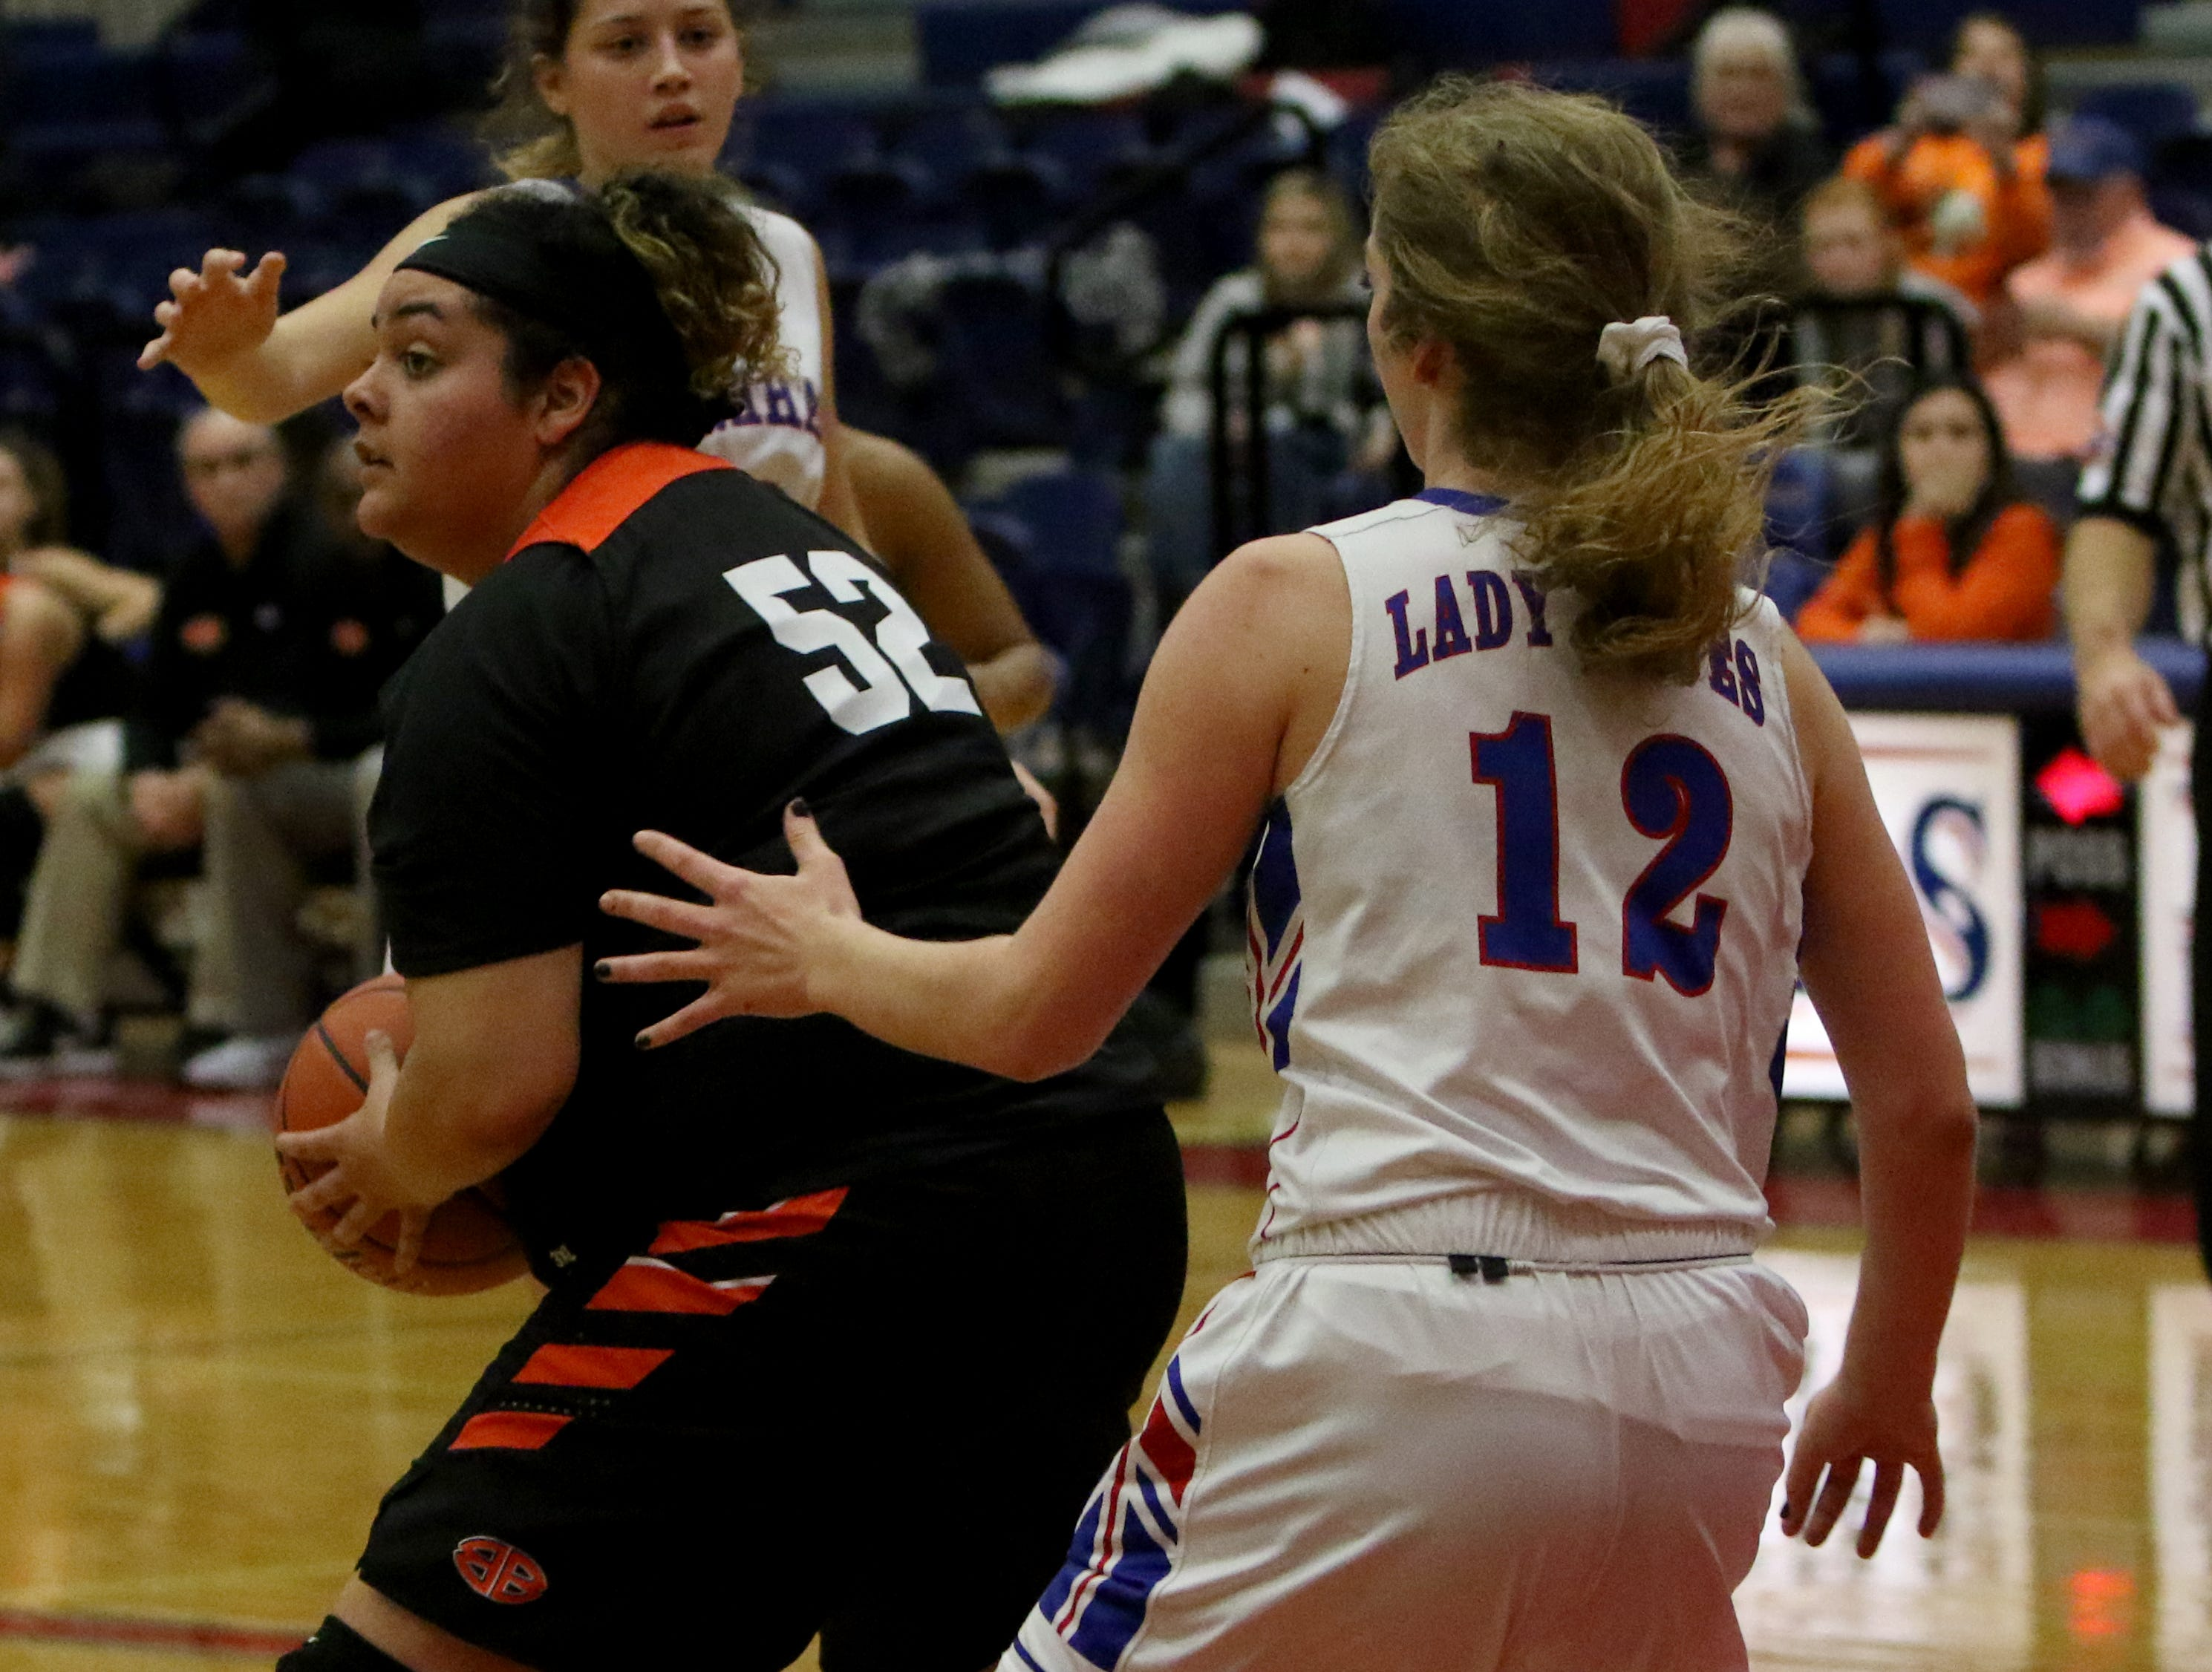 Burkburnett's Kerissa Durham looks to a teammate in while guarded by Graham's Emma Ranger Friday, Jan. 4, 2019, in Graham. The Lady Blues defeated the Lady Bulldogs 51-33.